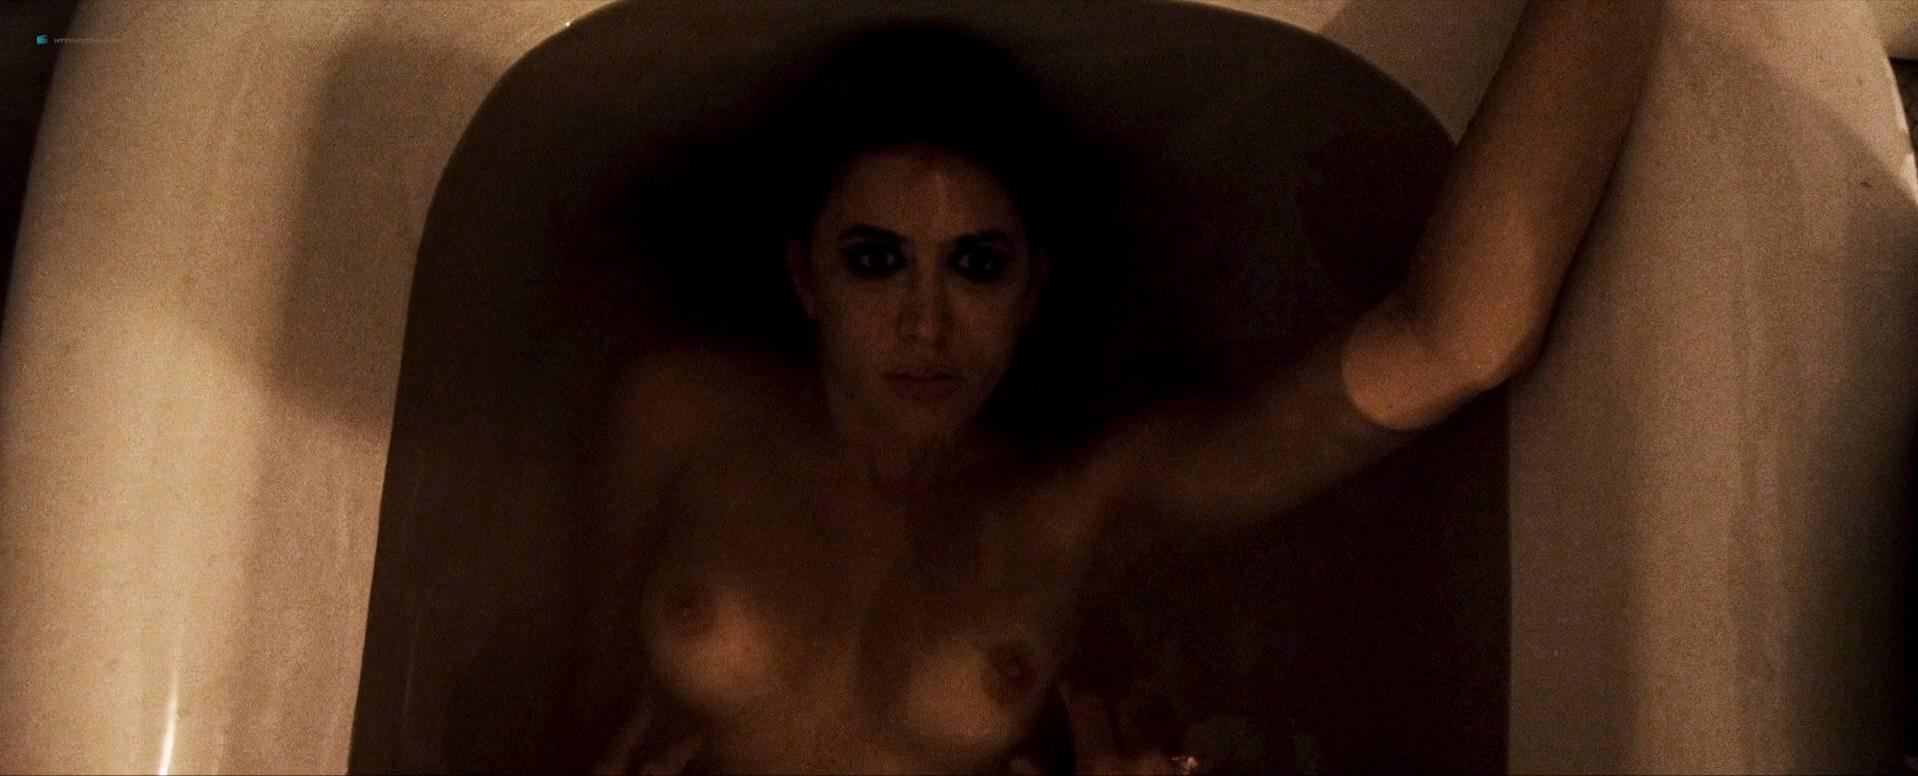 Jessica Sonneborn nude, Julianne Tura nude - The Haunting of Alice D (2014)